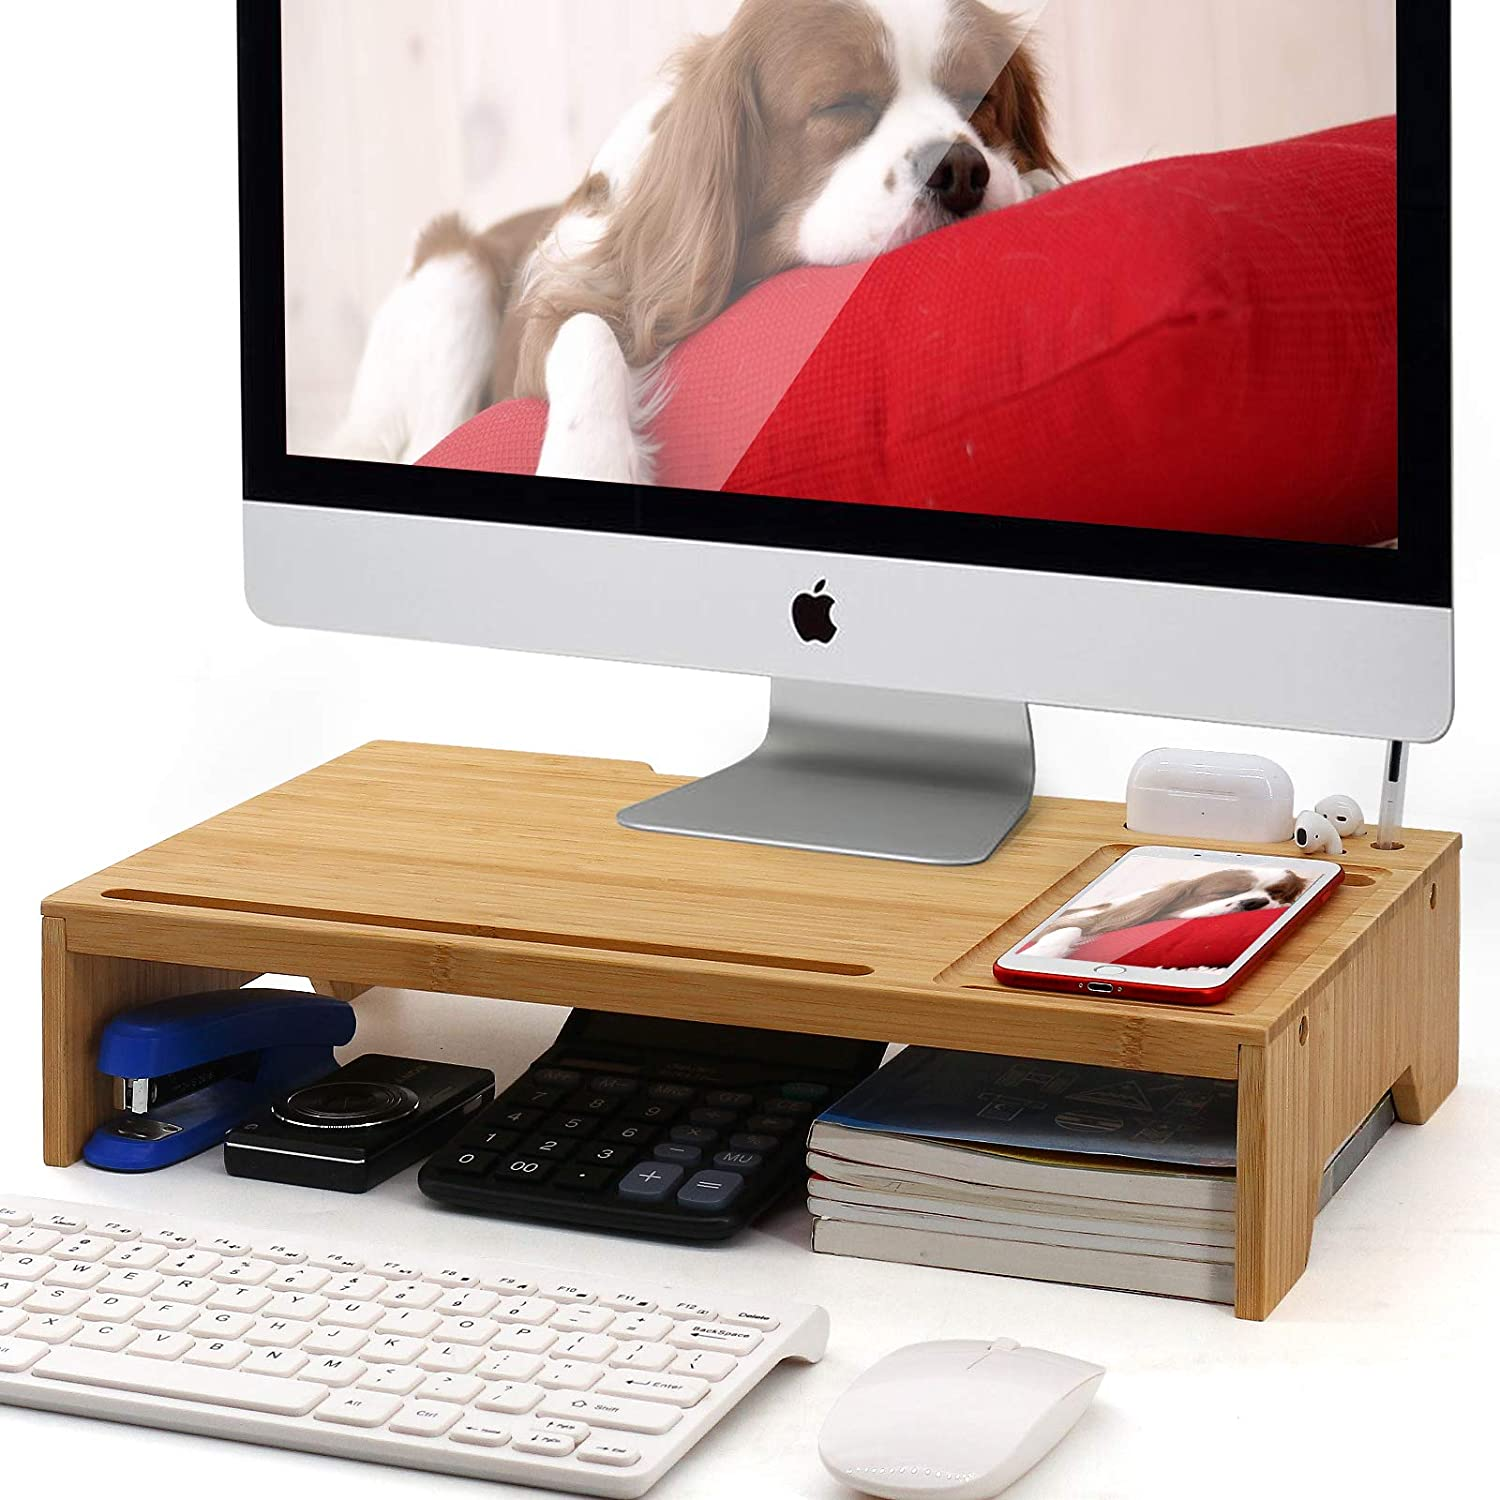 Bamboo Monitor Stand Riser Desk Organizer, Pezin & Hulin Home and Office Wood Desktop Stand Storage for Computer, Laptop, PC, Printer, Notebook